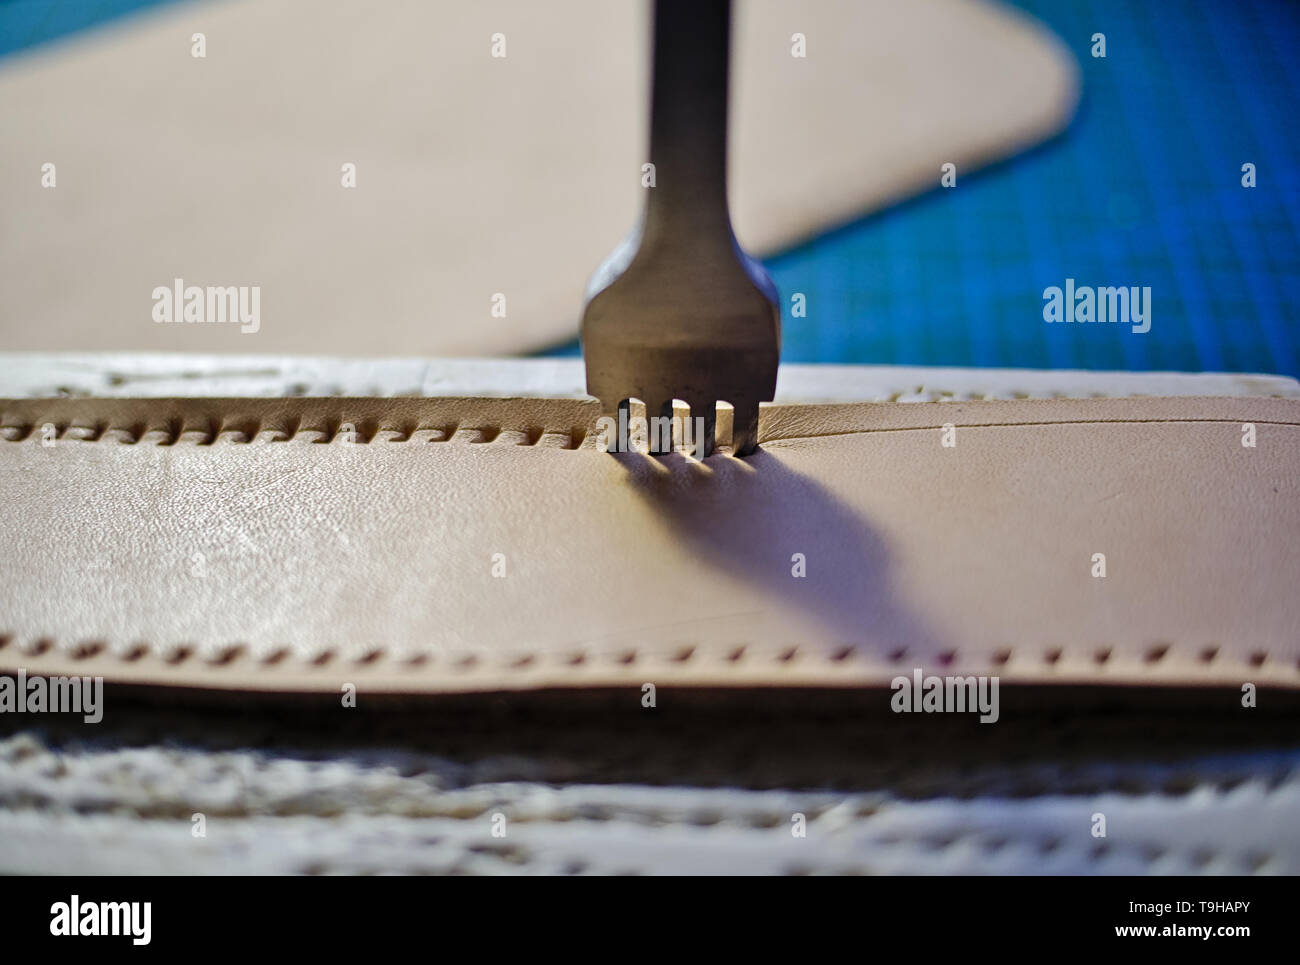 Leather working four prong chisel hole punch close up. Punching holes for stiching with metal tool. Selective focus. - Stock Image